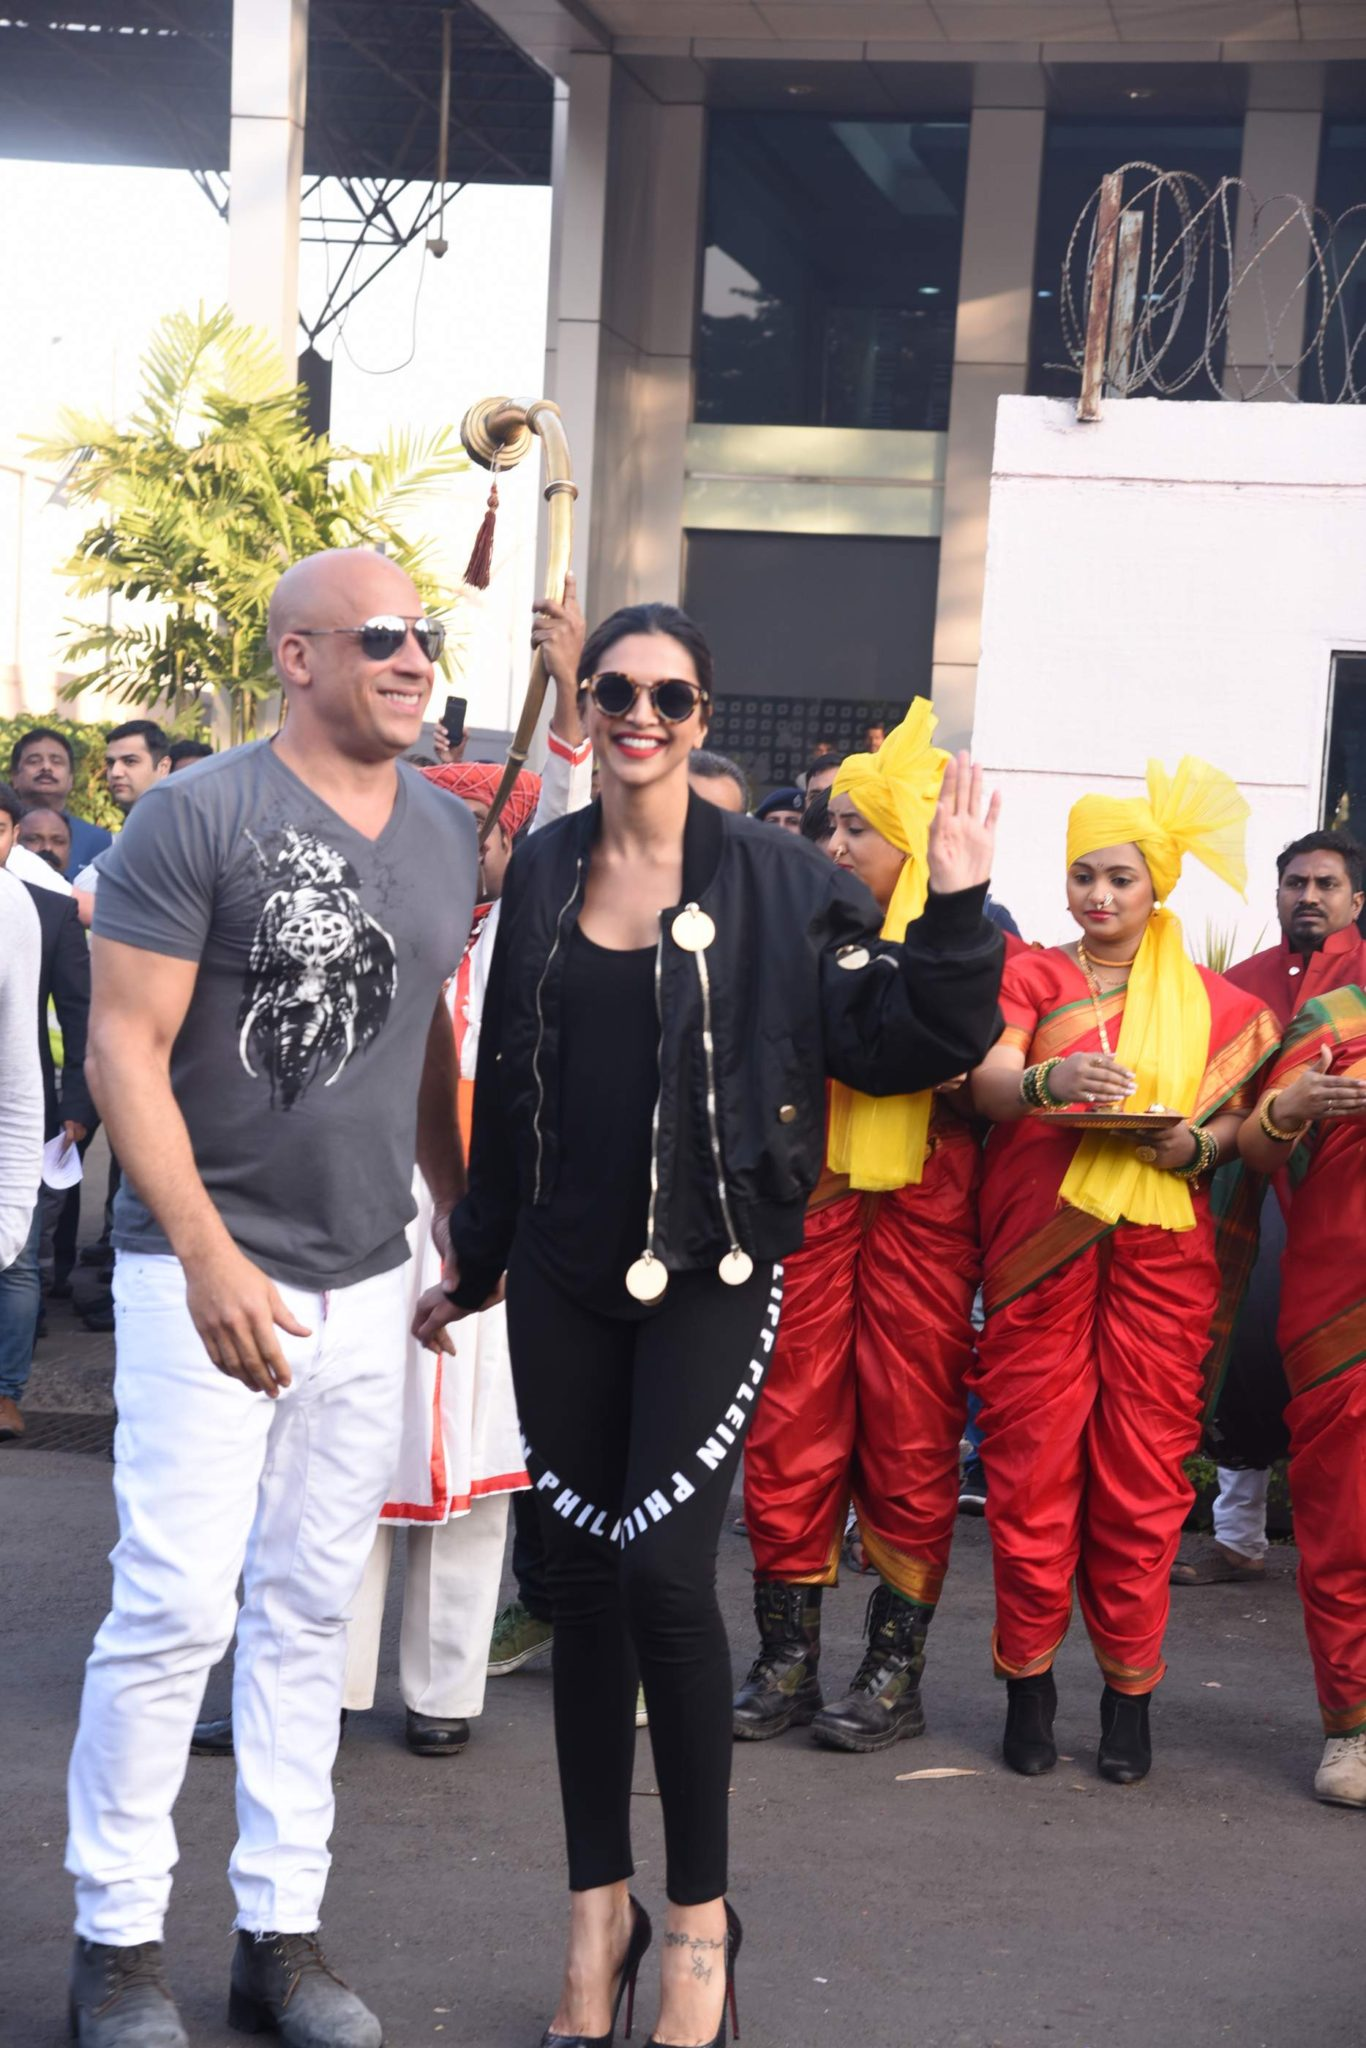 Brand New Pics of Vin Diesel and Deepika Padukone Deepika Padukone Brand New Pics of Vin Diesel and Deepika Padukone Vin Diesel Deepika 18